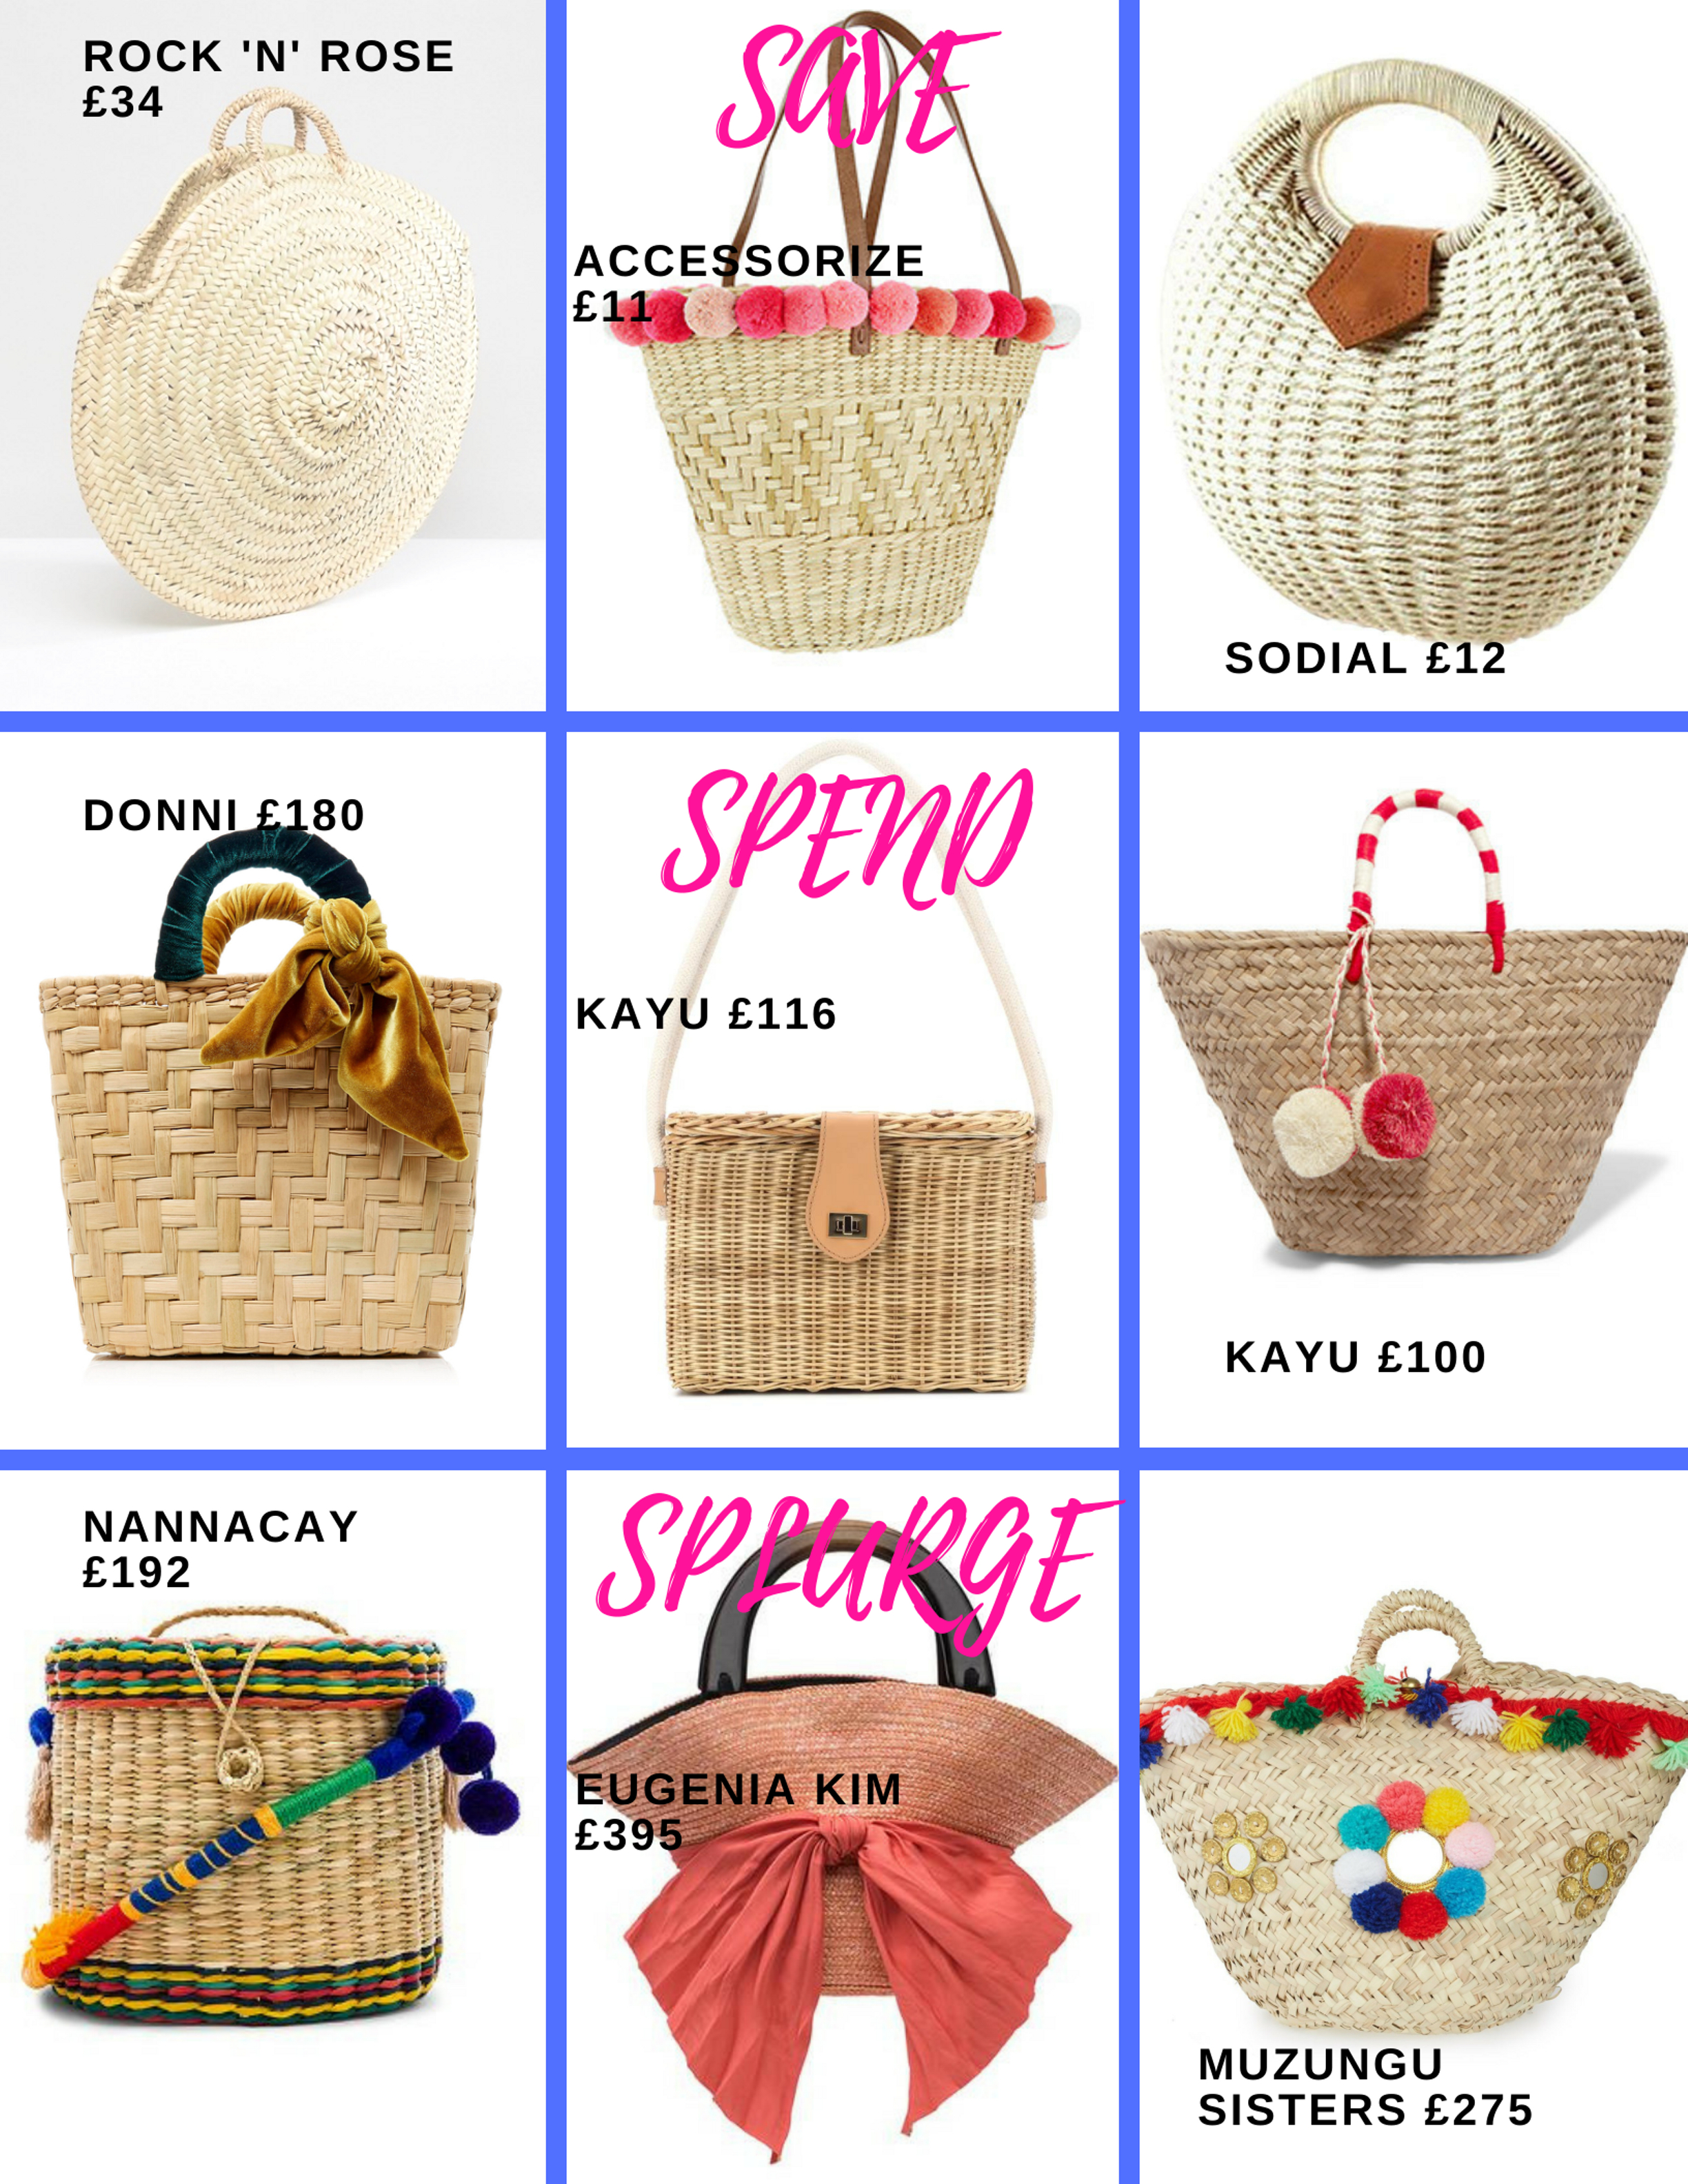 Selection of basket bags available for every budget